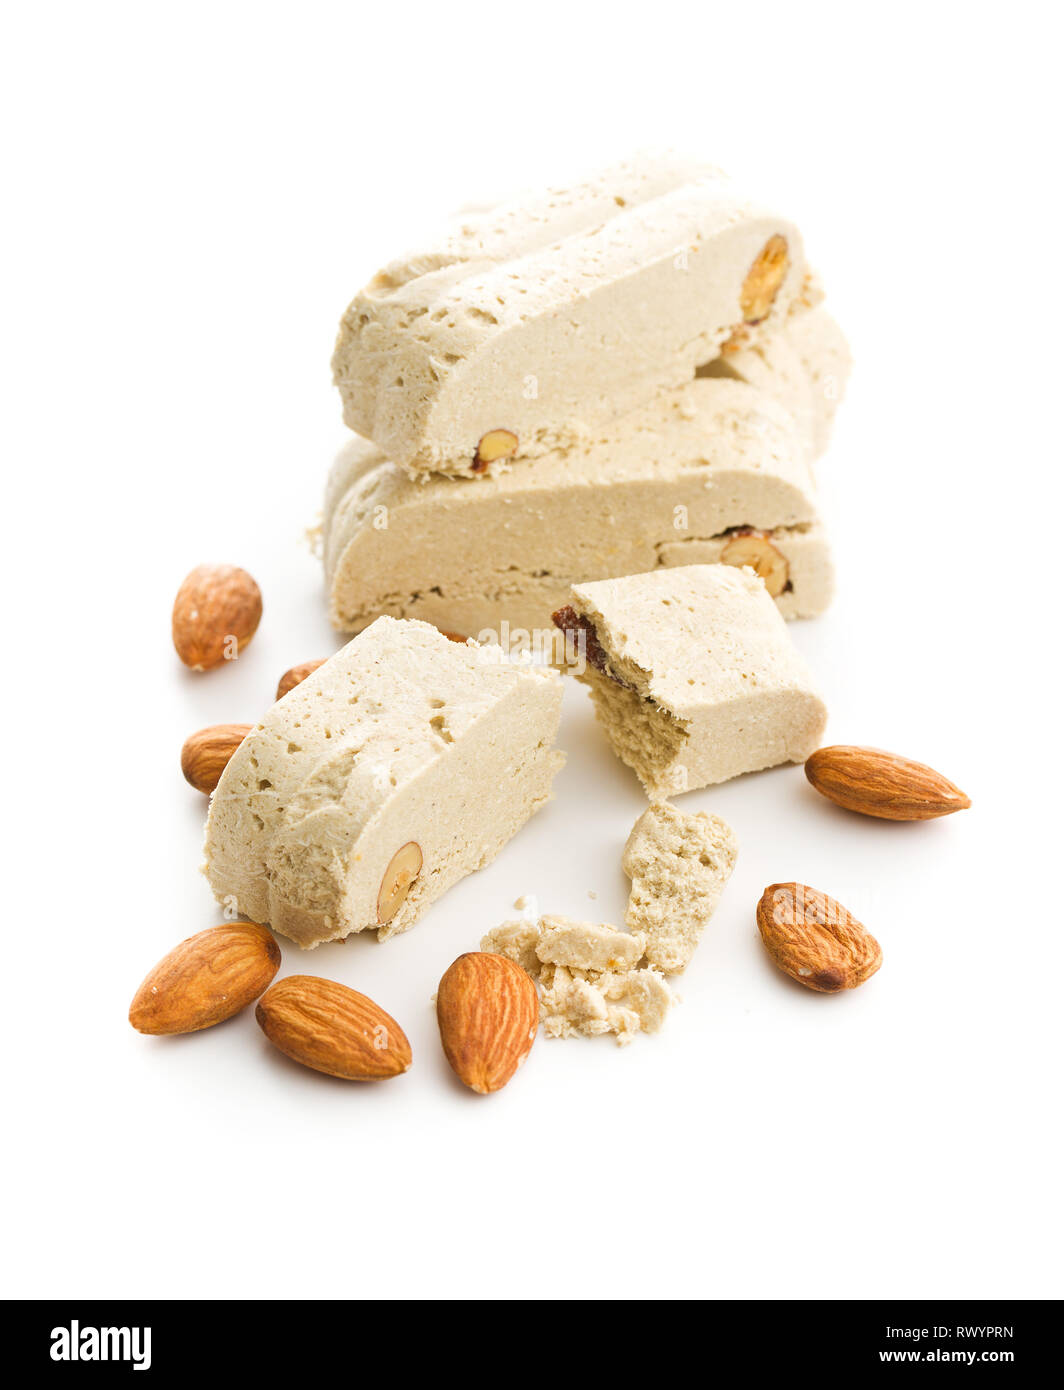 Sweet halva dessert slices with almonds isolated on white background.. - Stock Image